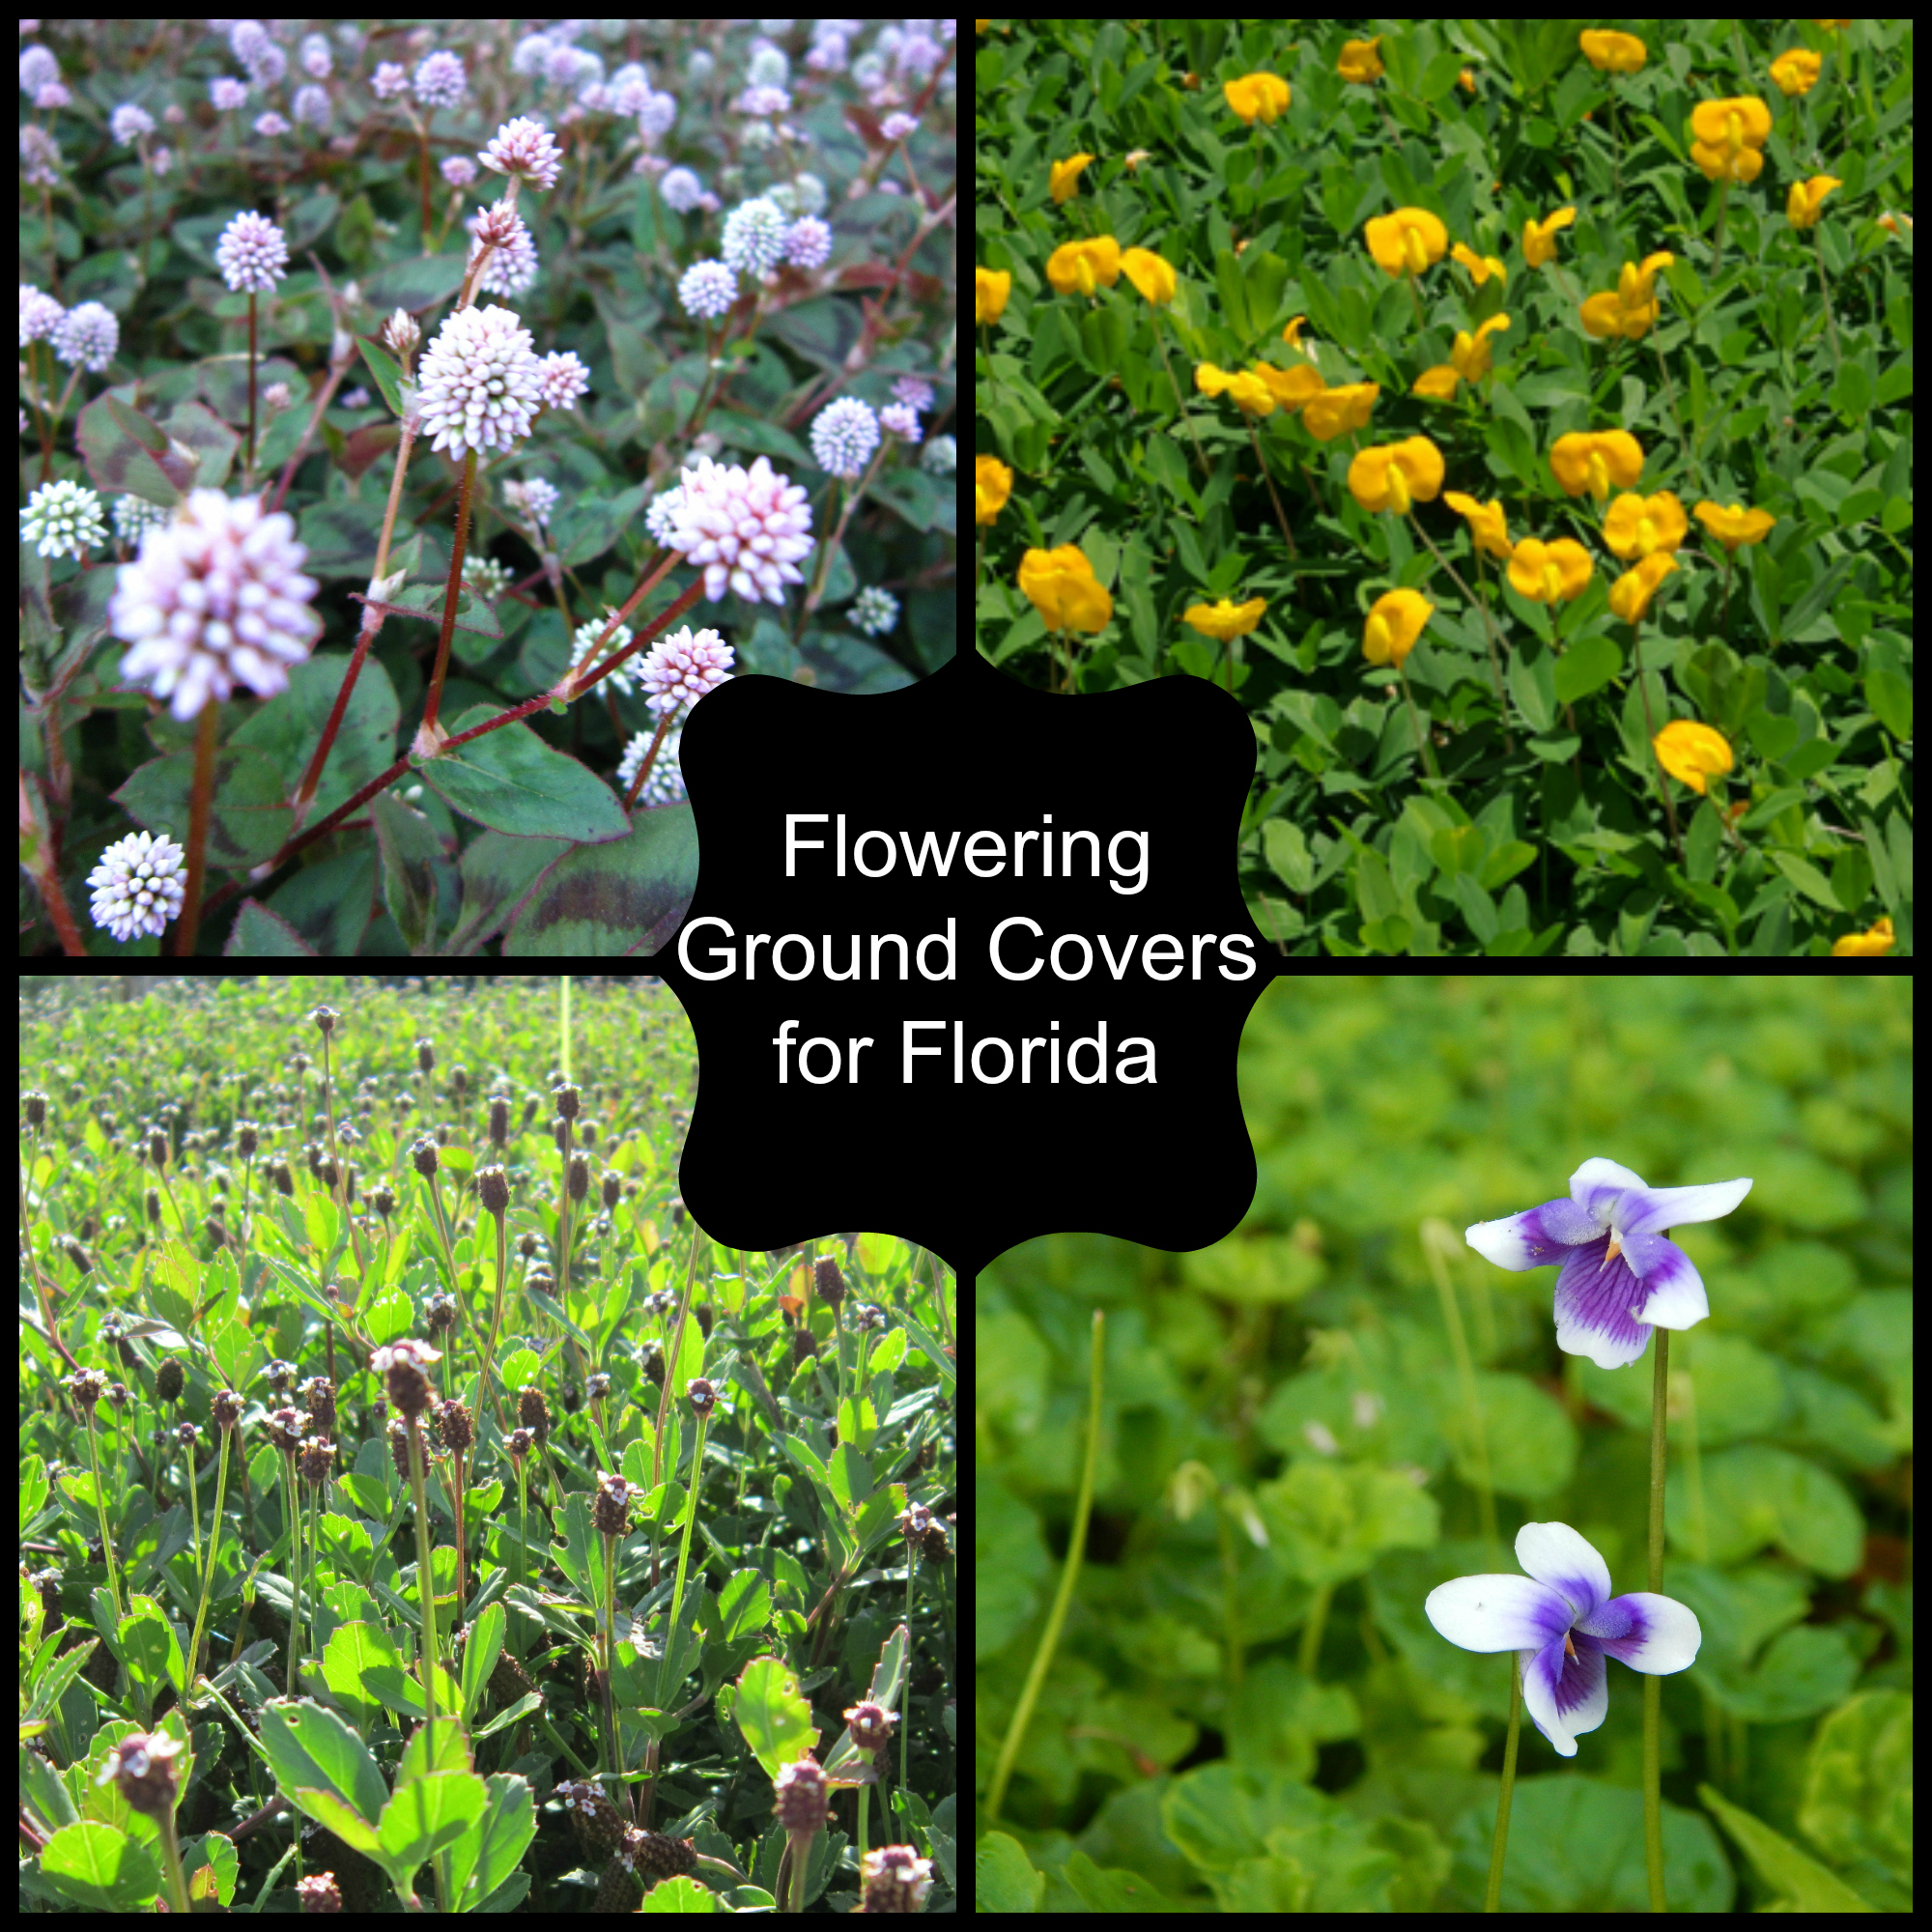 Flowering Ground Covers Miss Smarty Plants